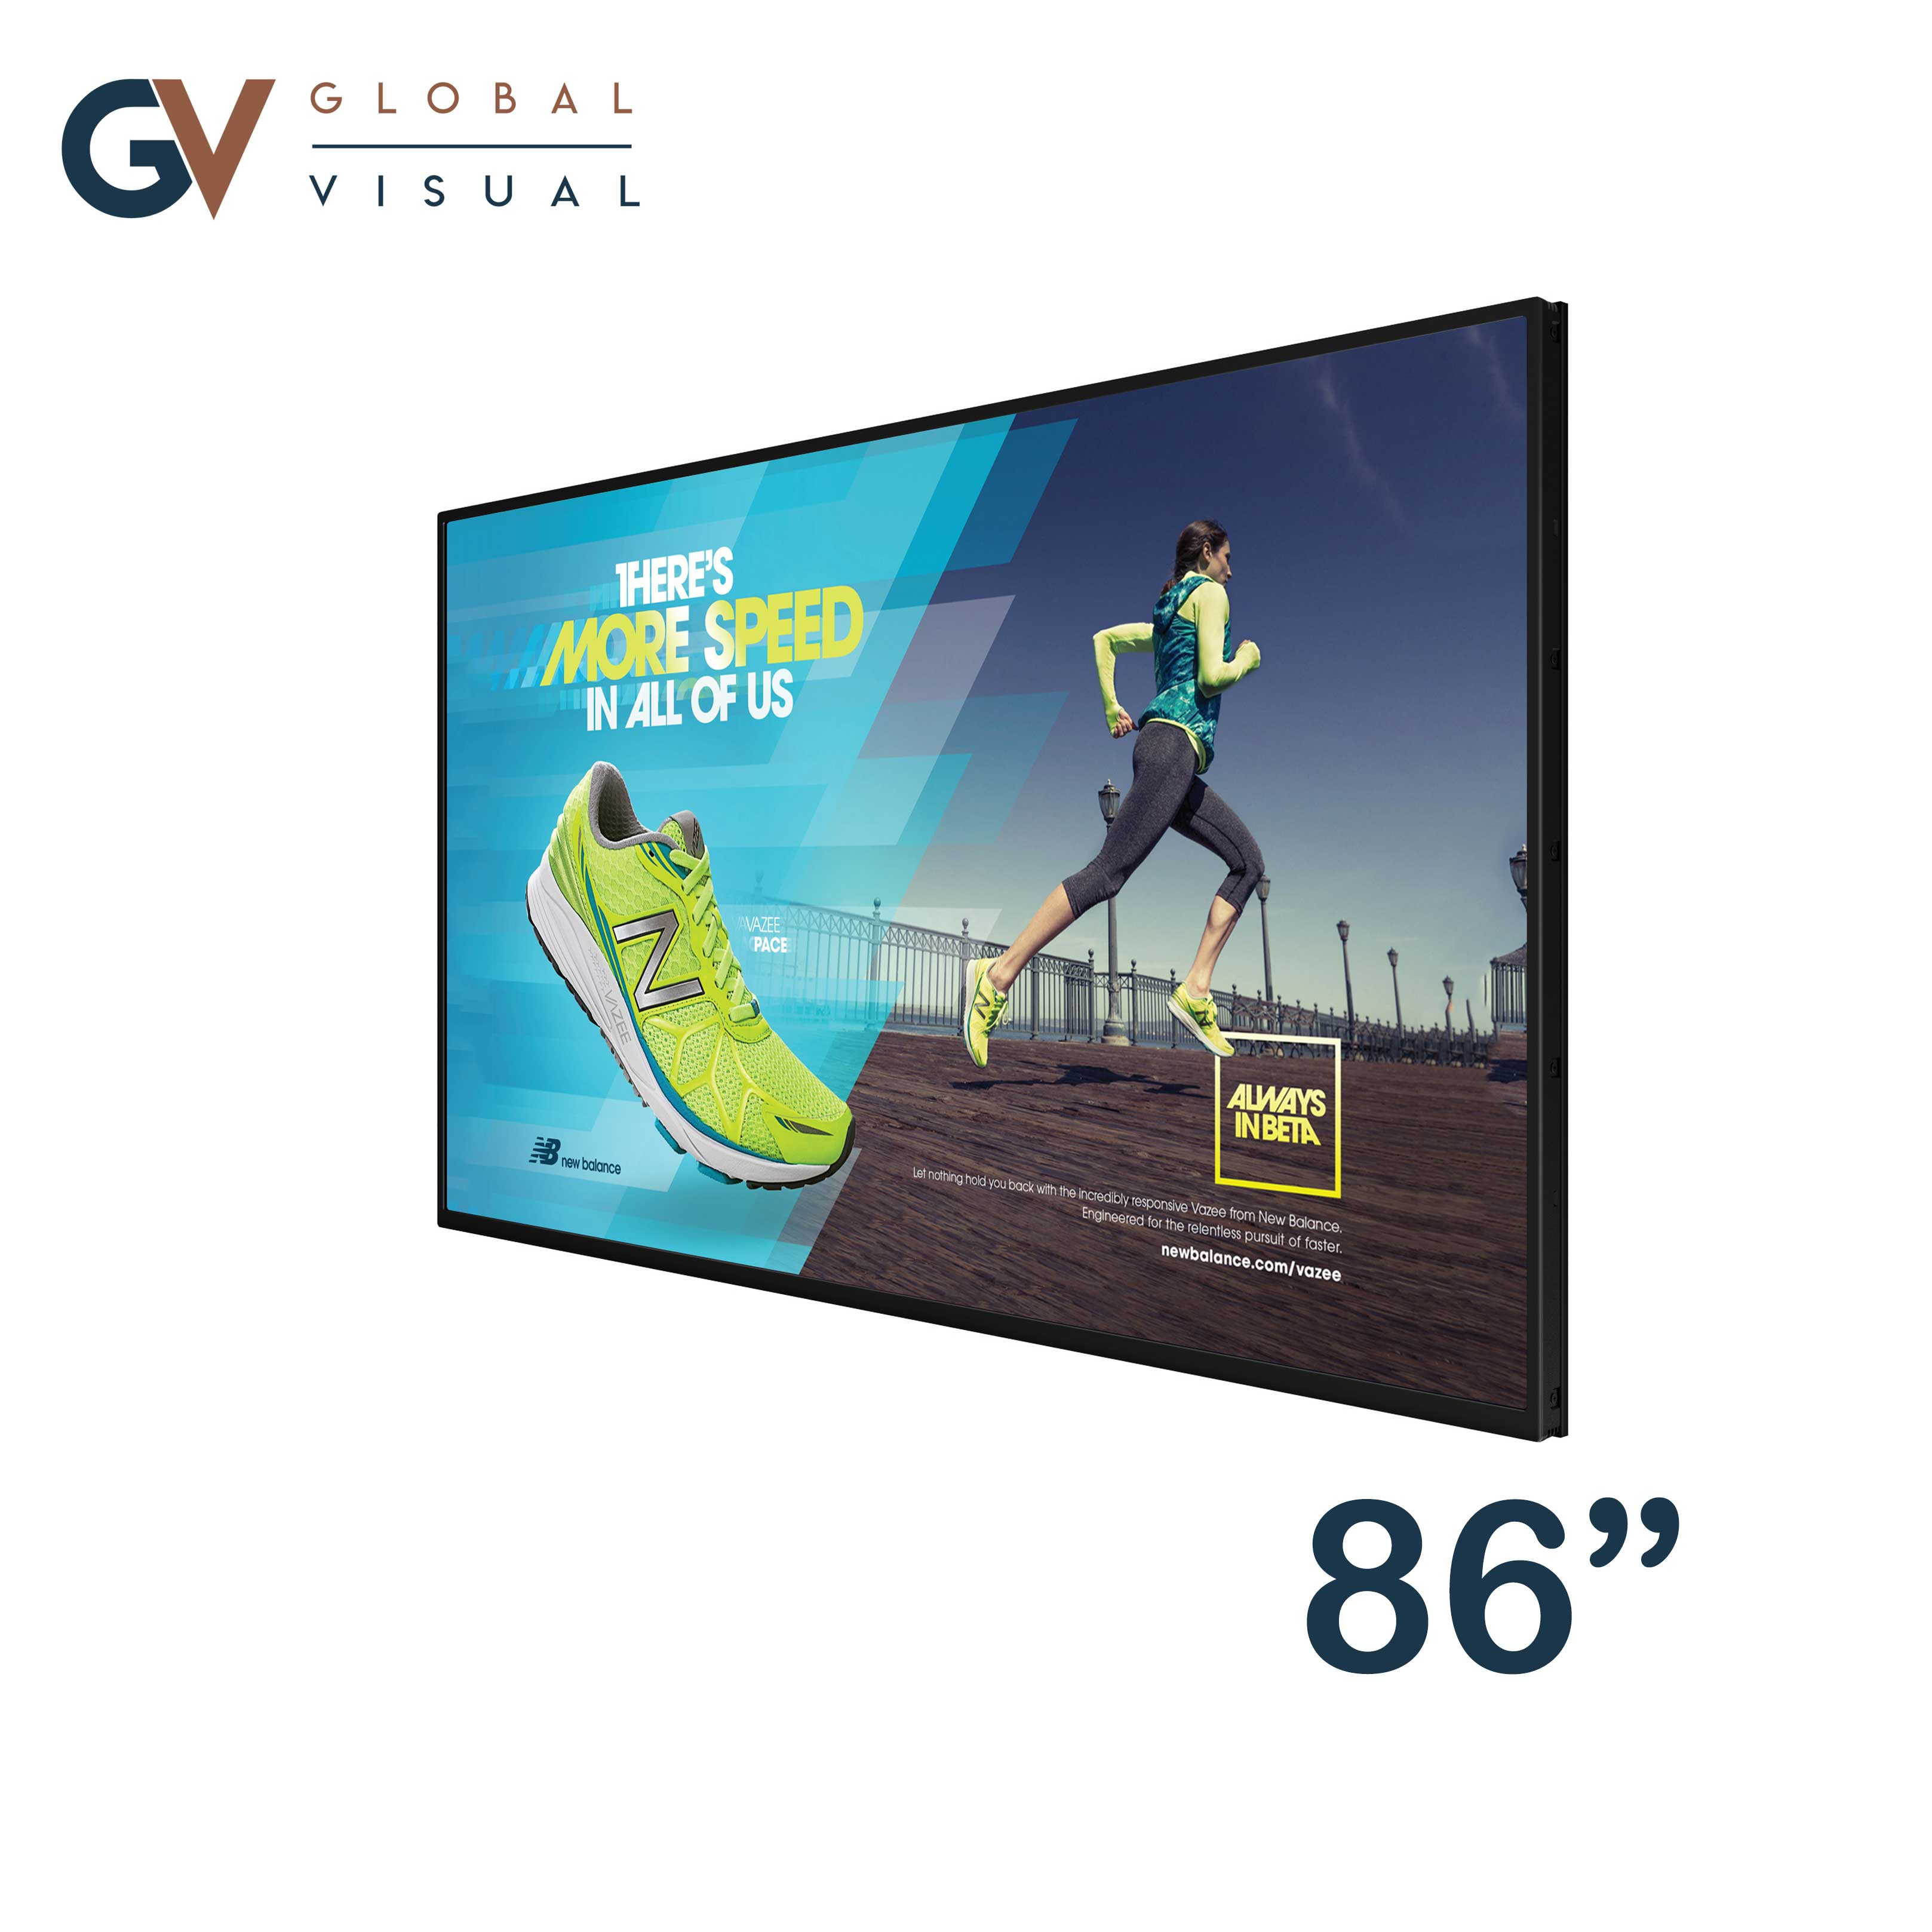 "Image of a 86"" commercial display"